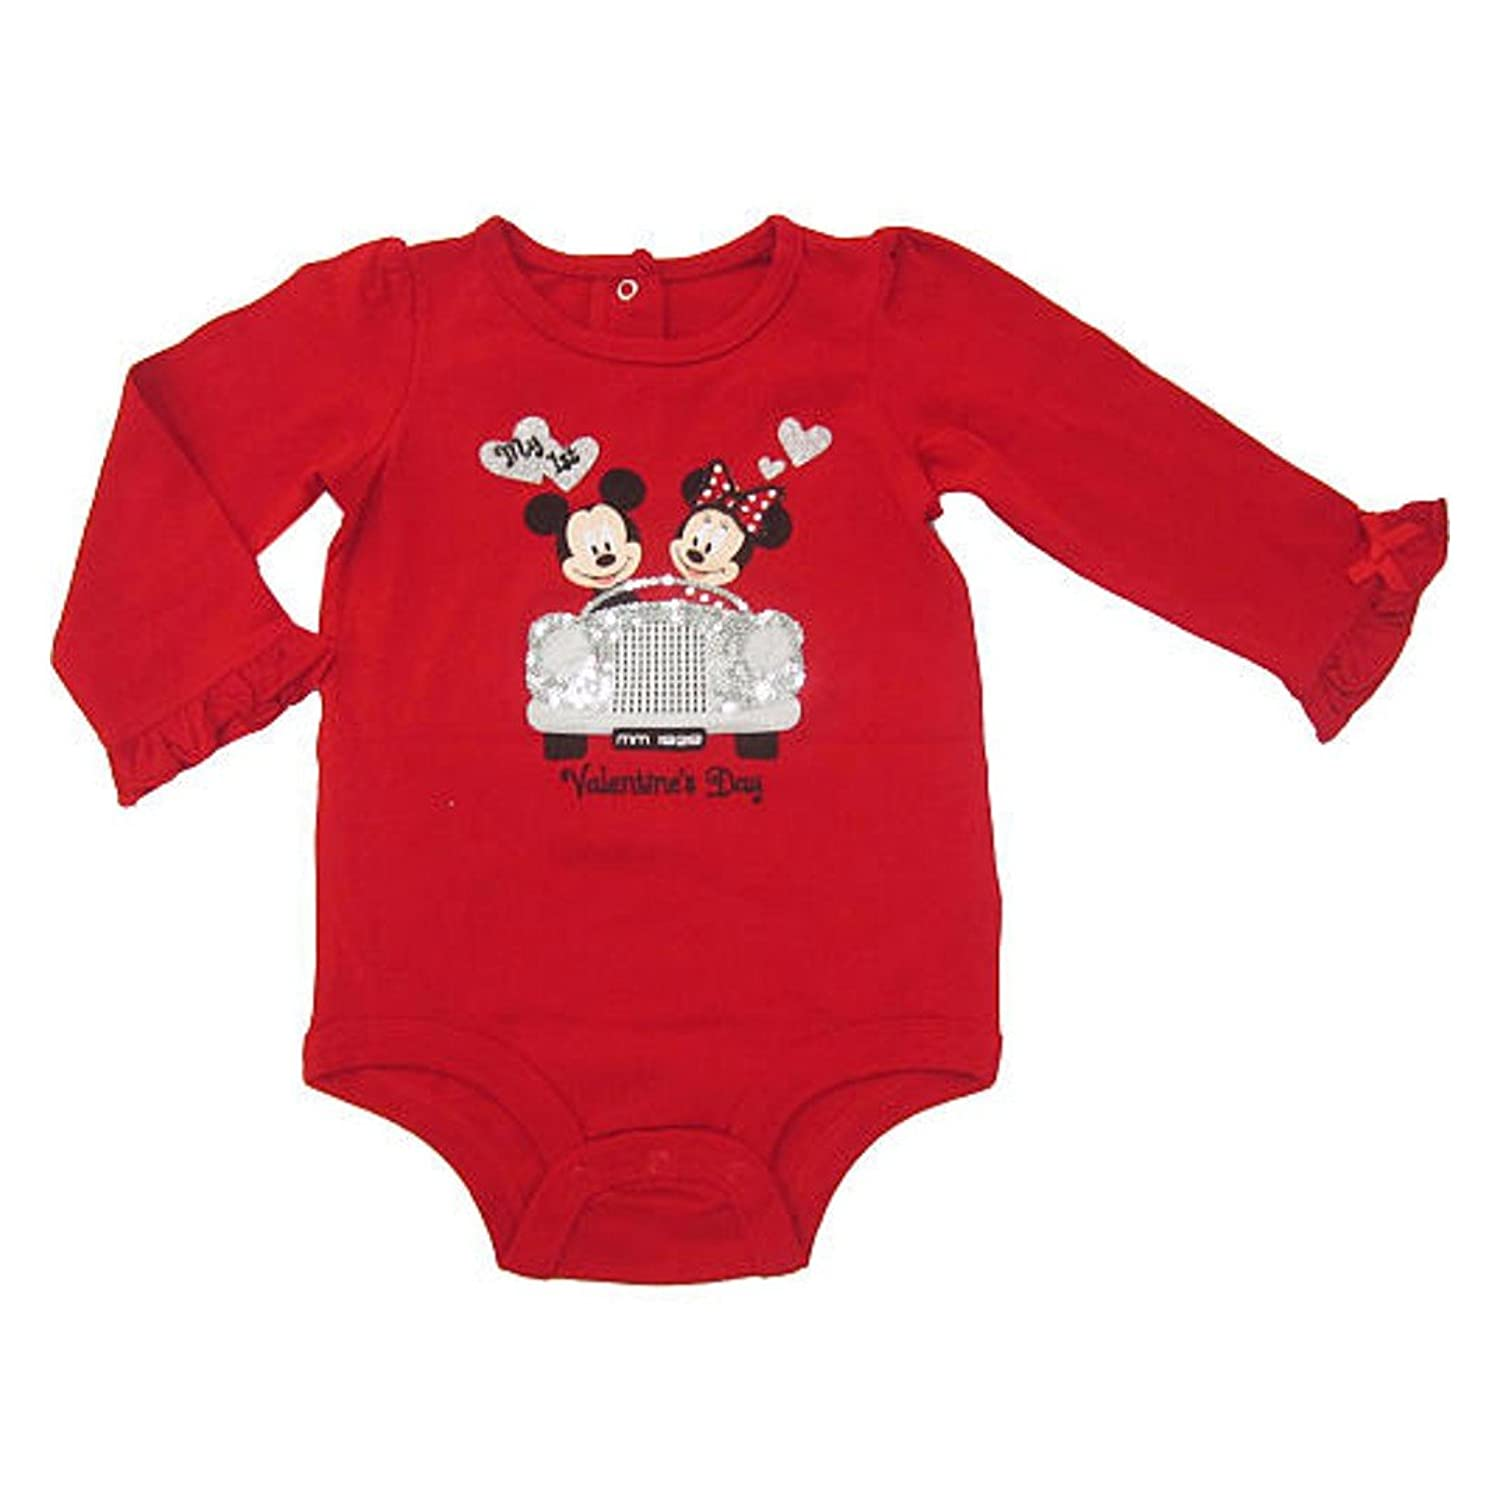 amazoncom disney mickey minnie mouse my first valentines day baby onesie dress up outfit newborn clothing - Baby Valentine